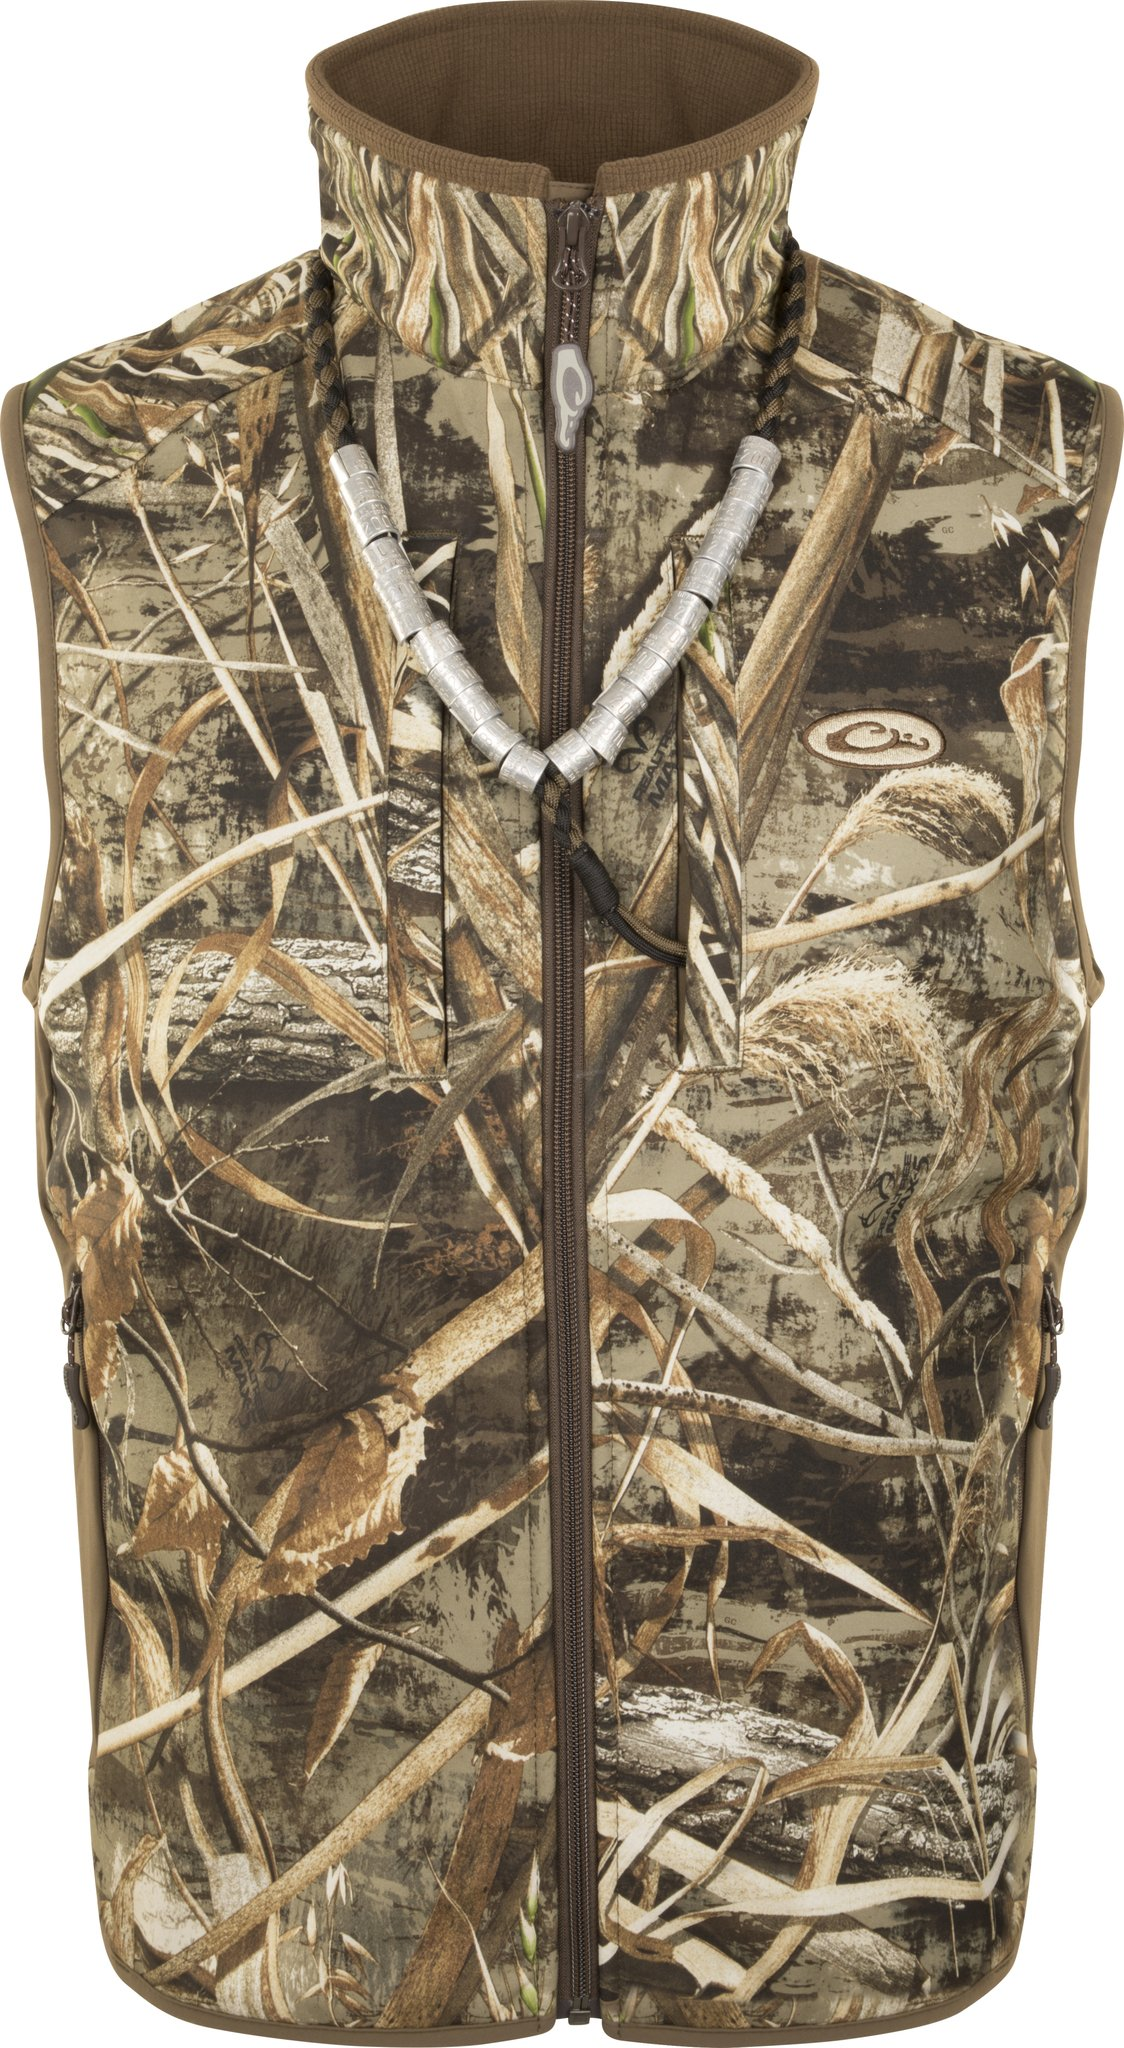 Drake EST Camo Windproof Tech Vest (Max5, 3X-Large) by Drake